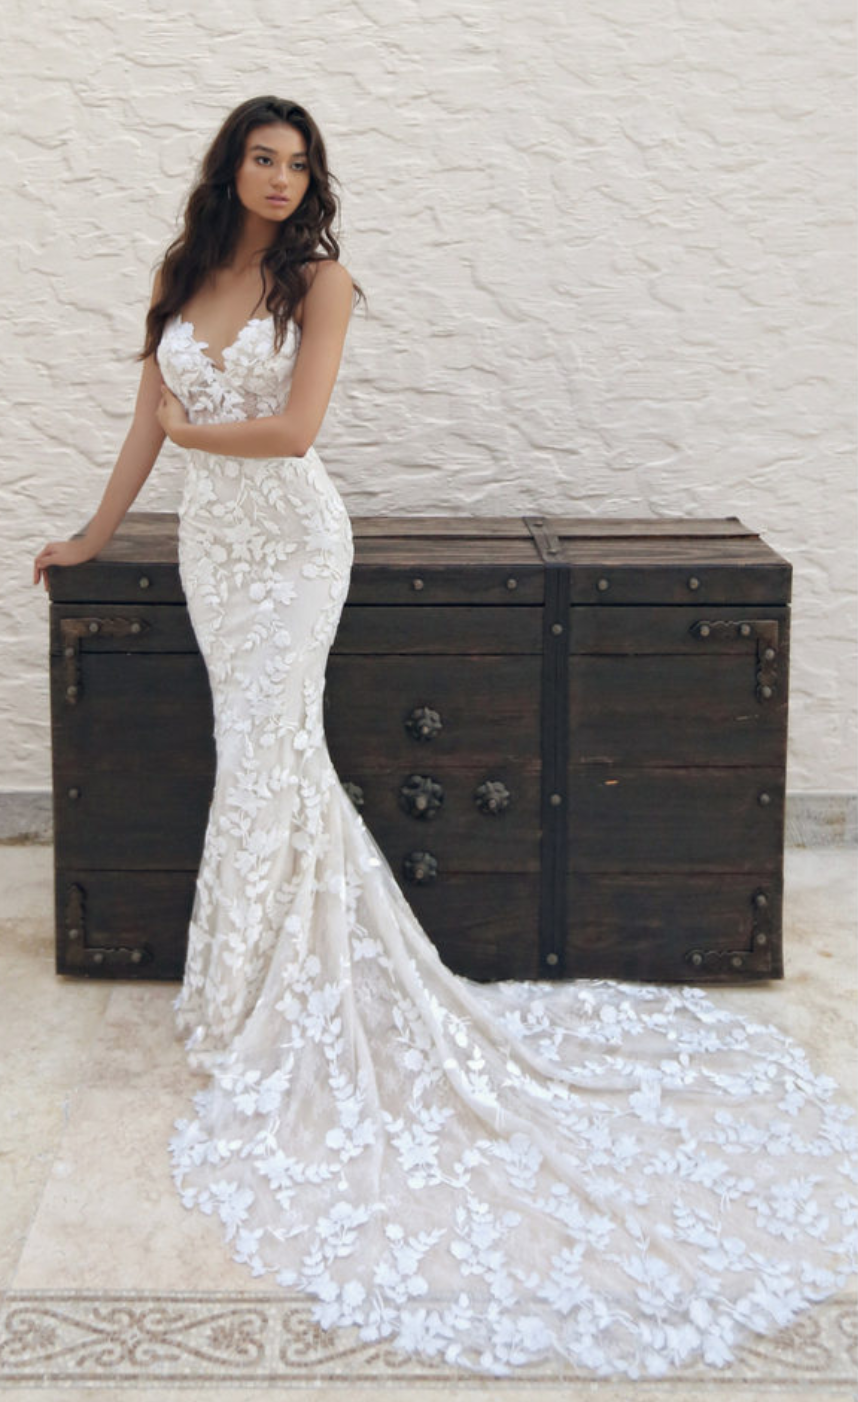 / 4 - ENZOANI | LESLEYStep straight out of a floral fairytale dream and onto the aisle in this sweet mermaid gown with delicate spaghetti straps framing the sexy, deep sweetheart neckline. Intricately embroidered lace appliques over the softest tulle, creating a romantic yet glamours look.